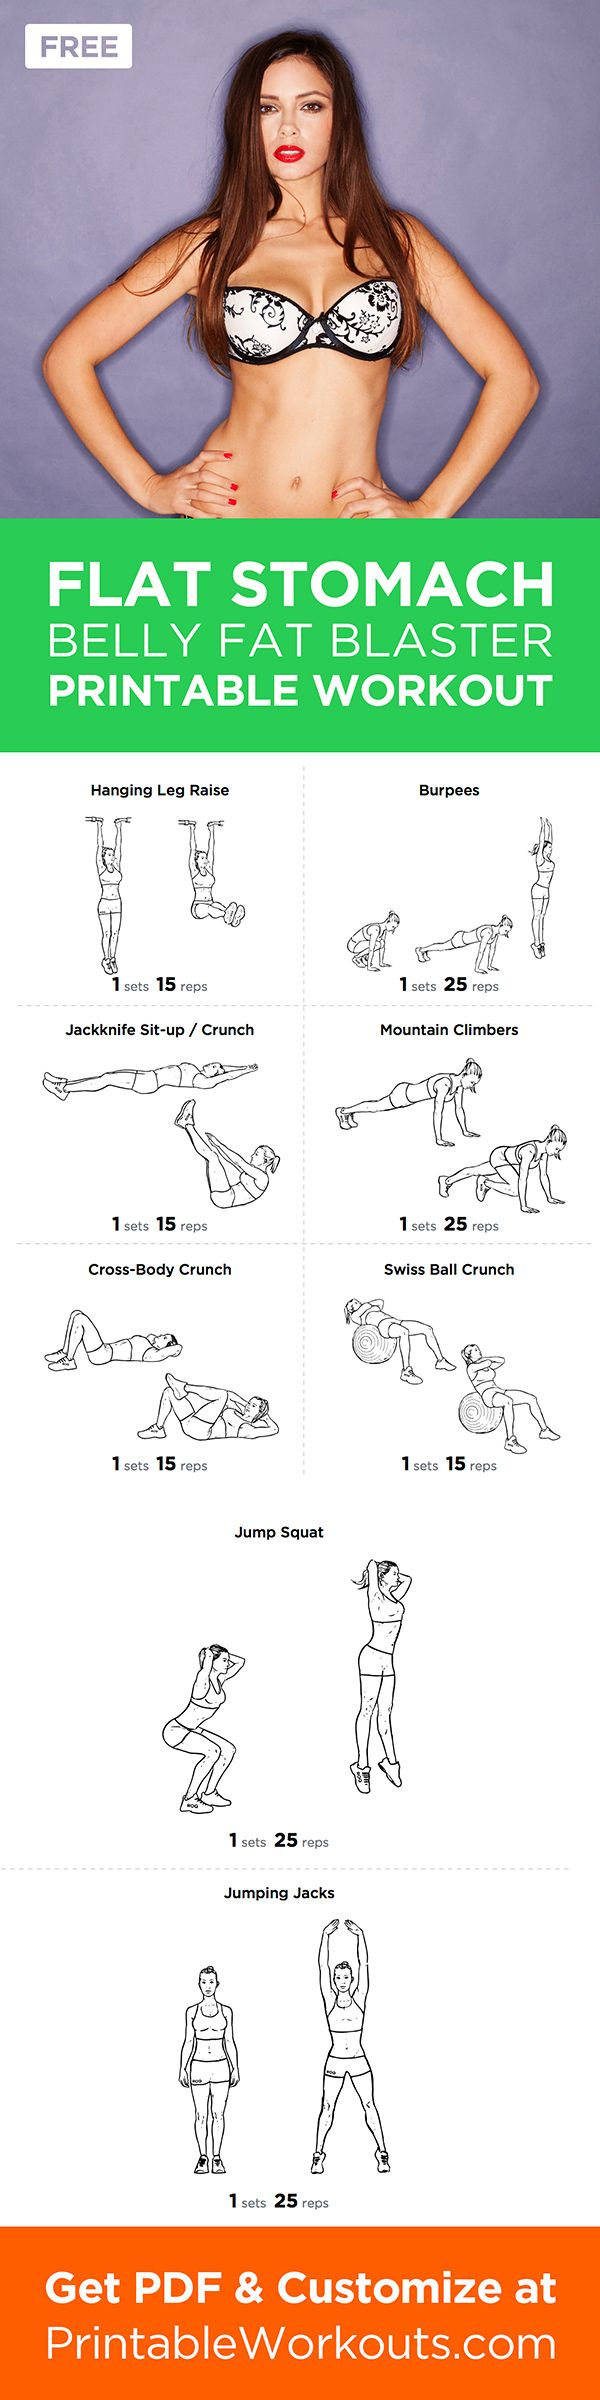 Looking to firm and flatten your stomach for the summer months ahead? This workout will do all that and burn fat at once. #workout